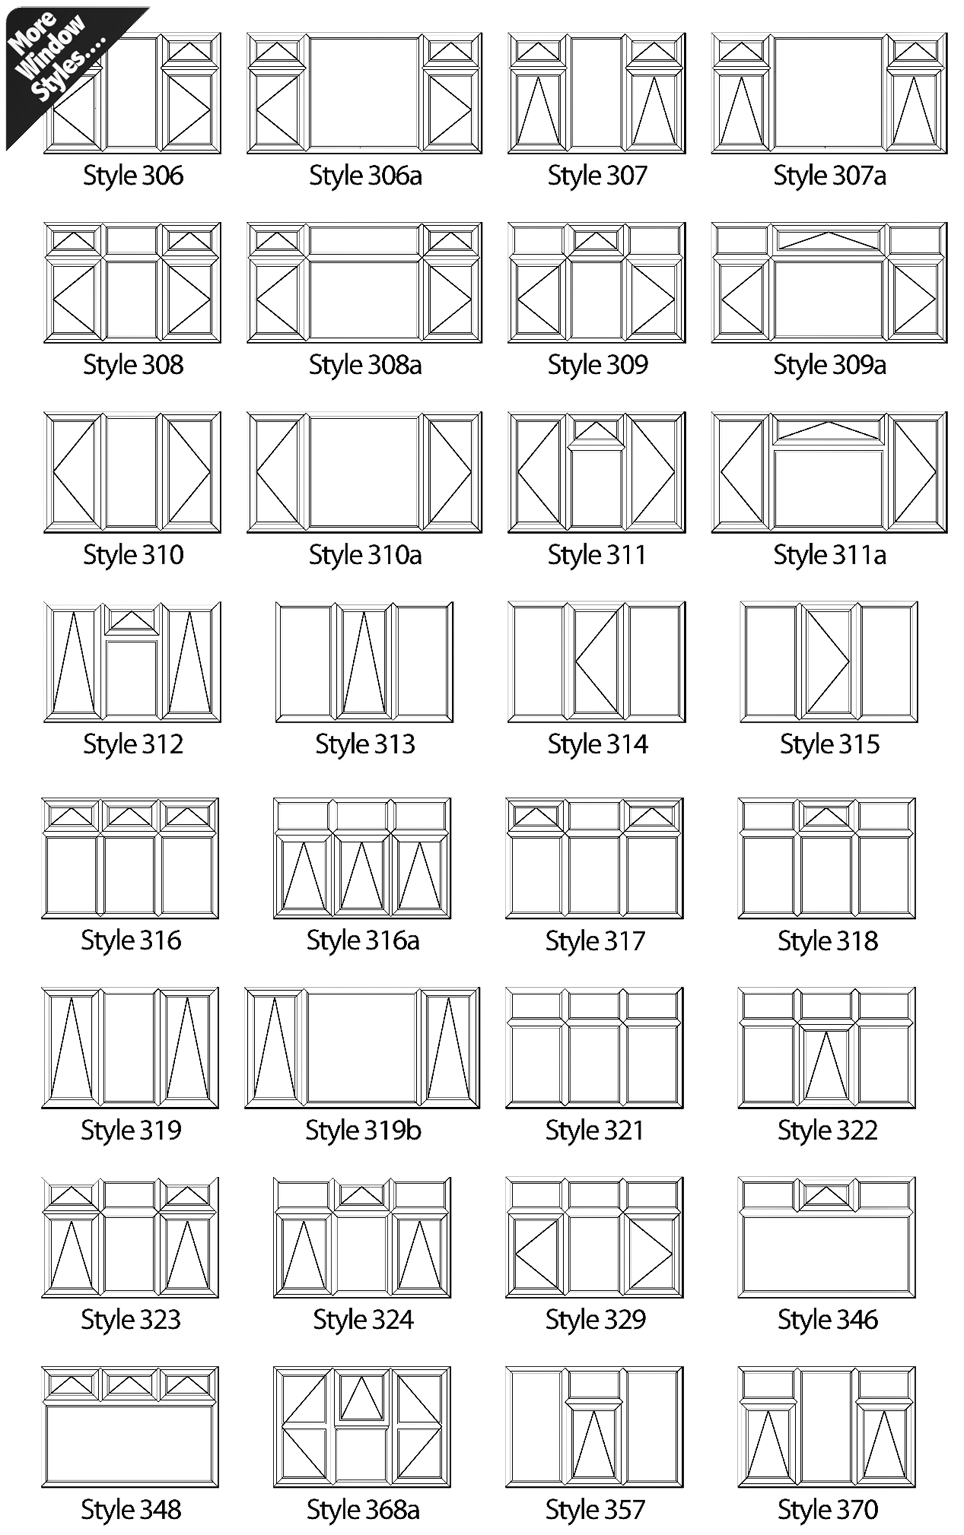 Images below show the variety of window styles available. Featuring  different opening types.